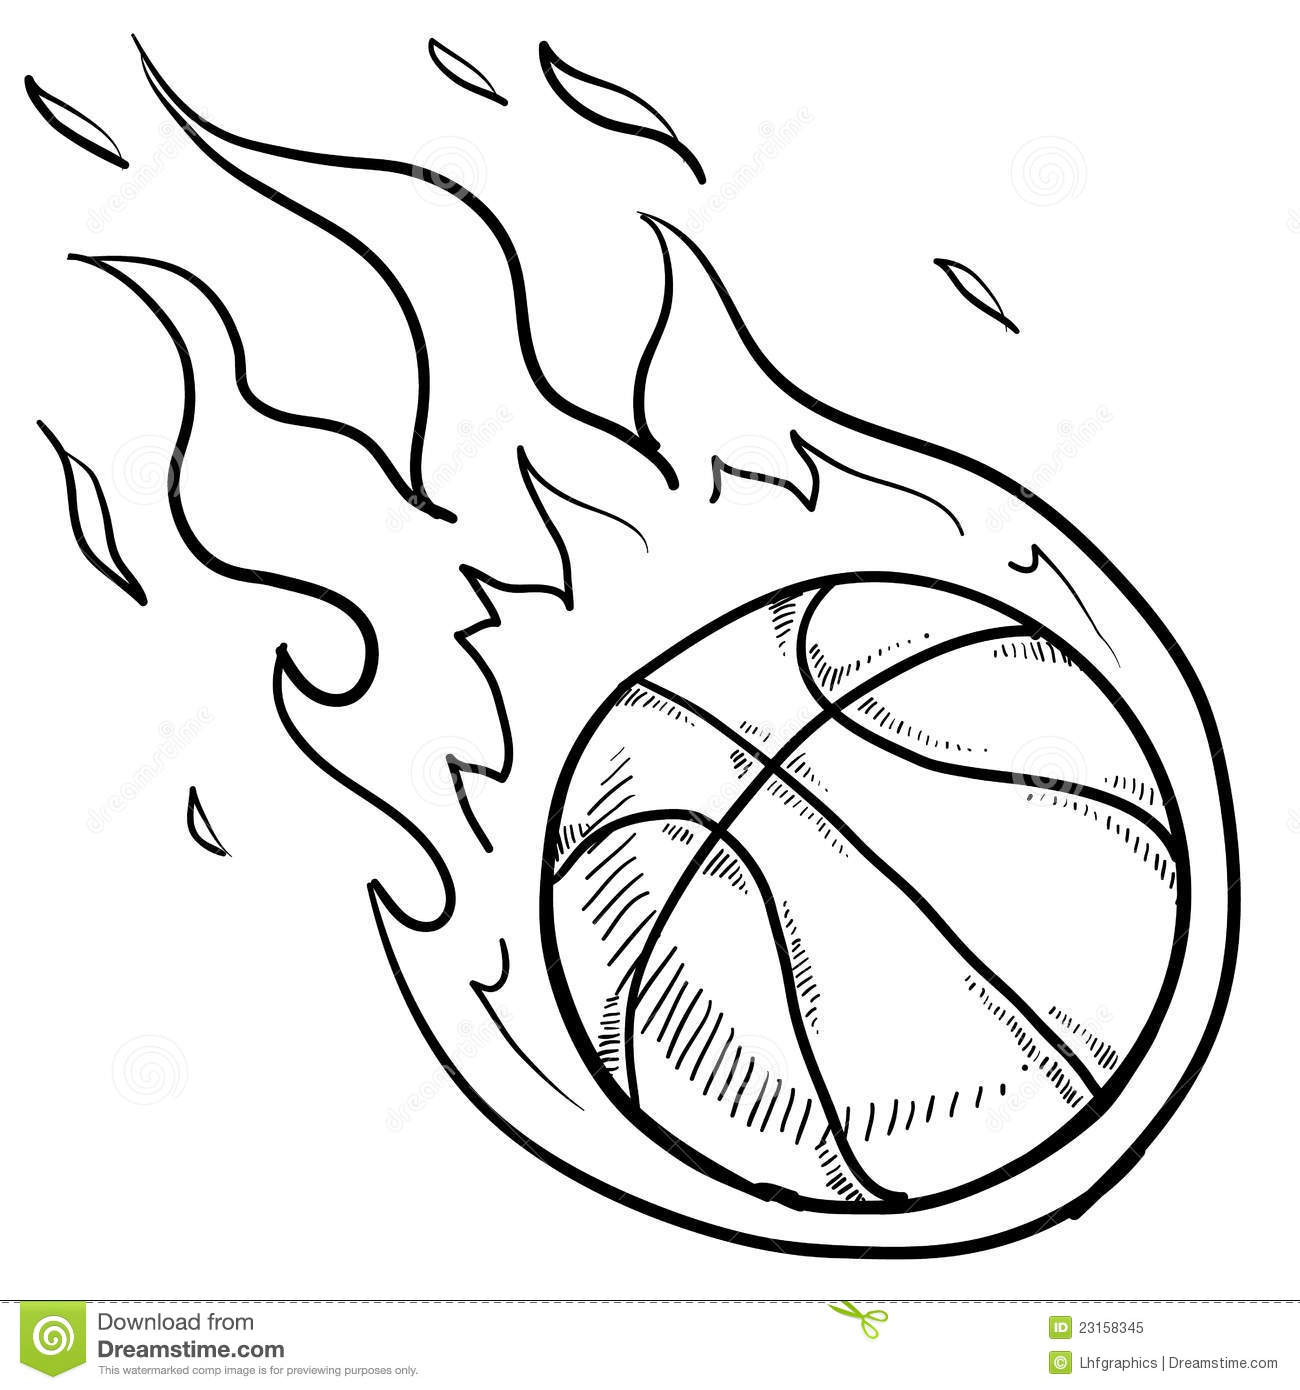 Basketball playoffs sketch stock vector. Illustration of